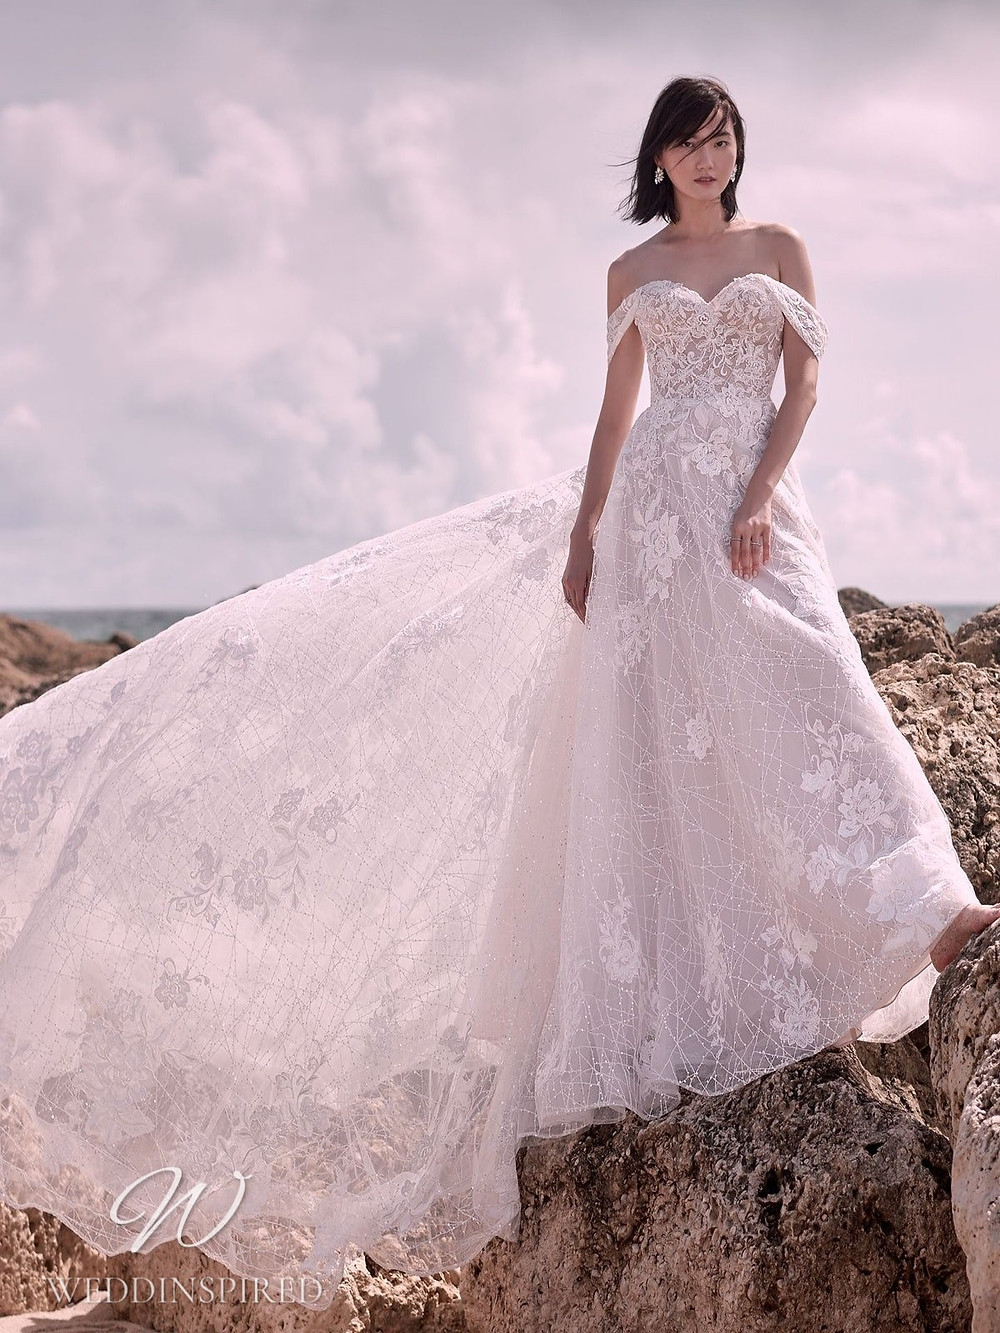 A Sottero & Midgley Spring 2021 off the shoulder lace and mesh A-line wedding dress